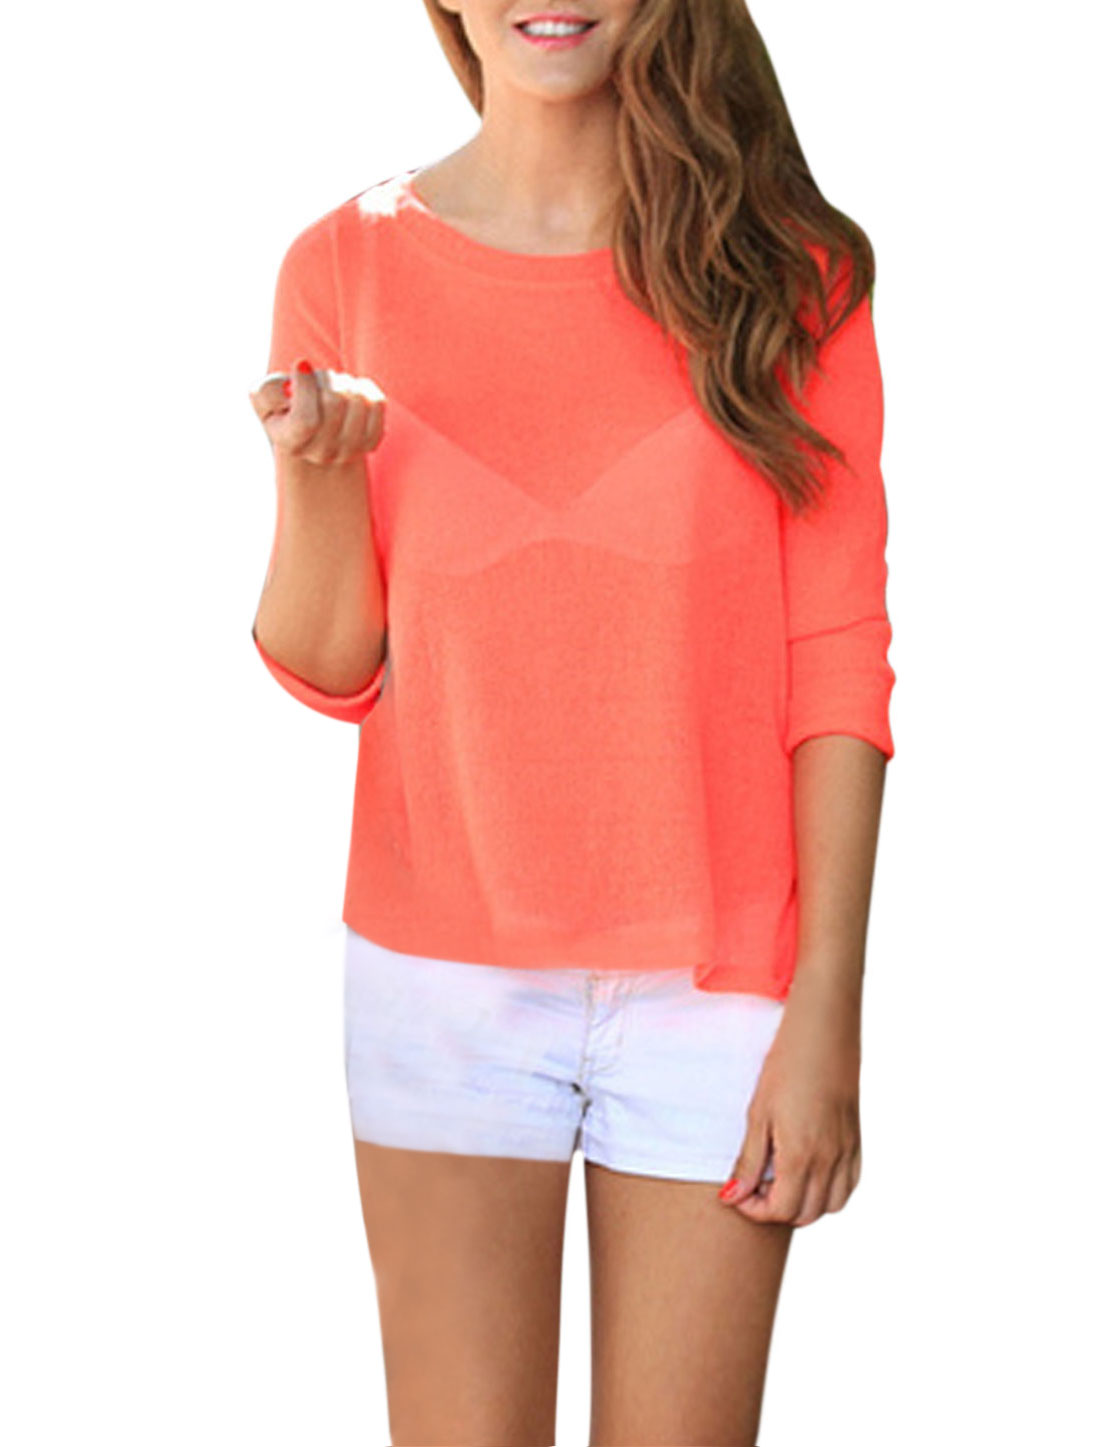 Lady Round Neck 3/4 Sleeves Crossover Back Slipover Chiffon Top Coral XS